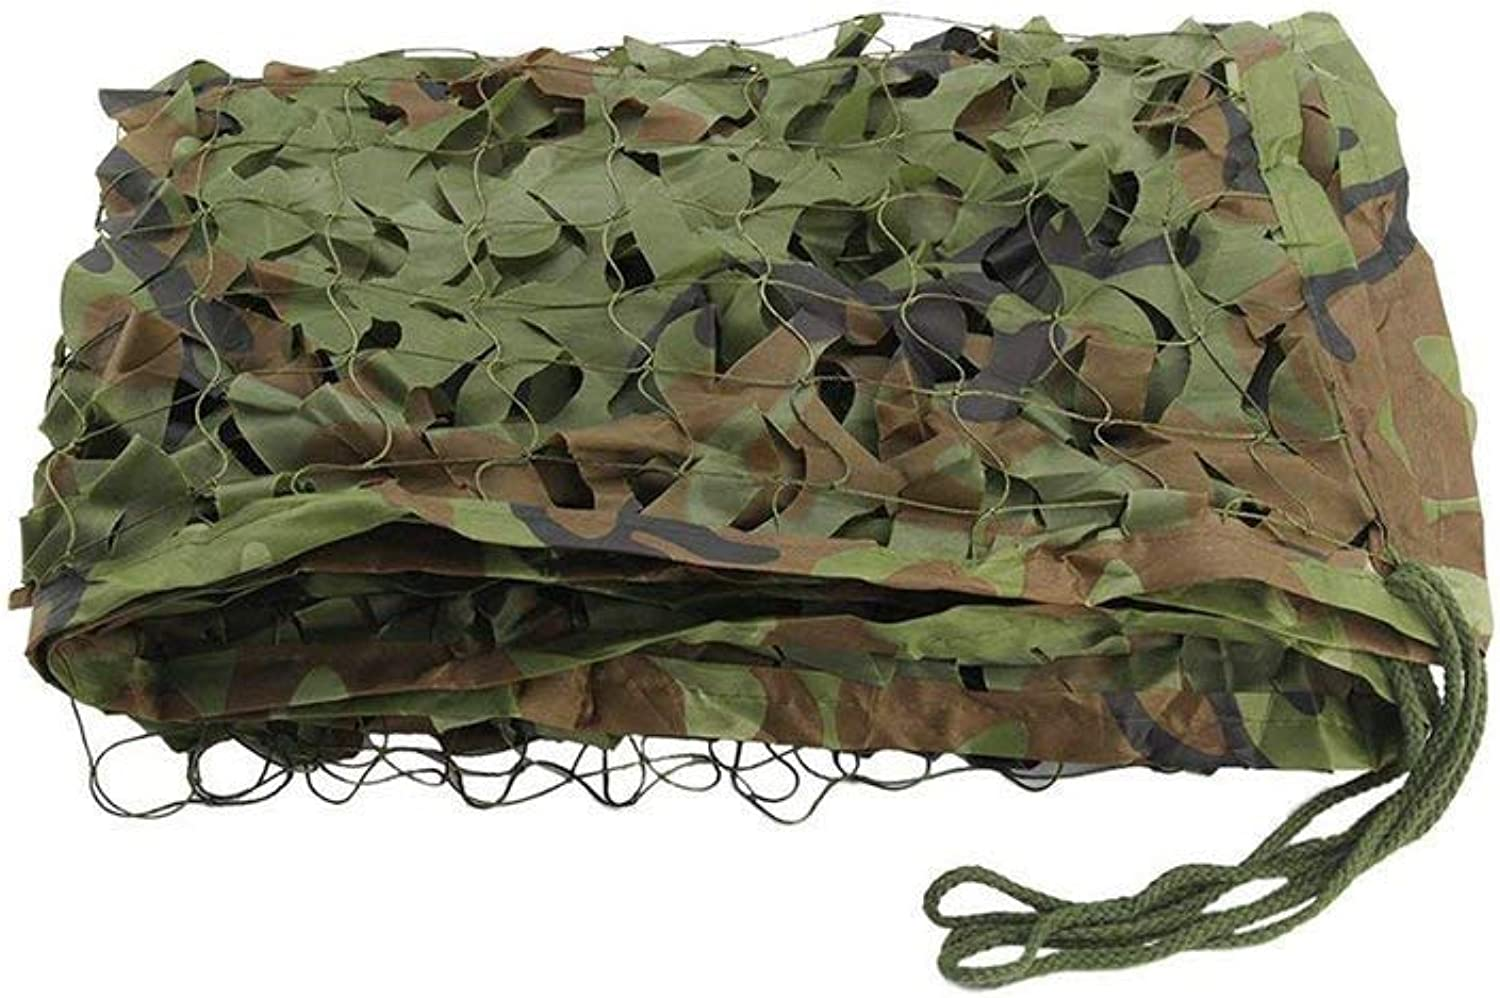 Forest Camouflage Netting Oxford Net Predection Air Defense Camouflage Outdoor Preparation Camping Camping Party Decoration Hidden Camp Shelter Tent Camouflage Cover (3  3m) (Size   6  6m)